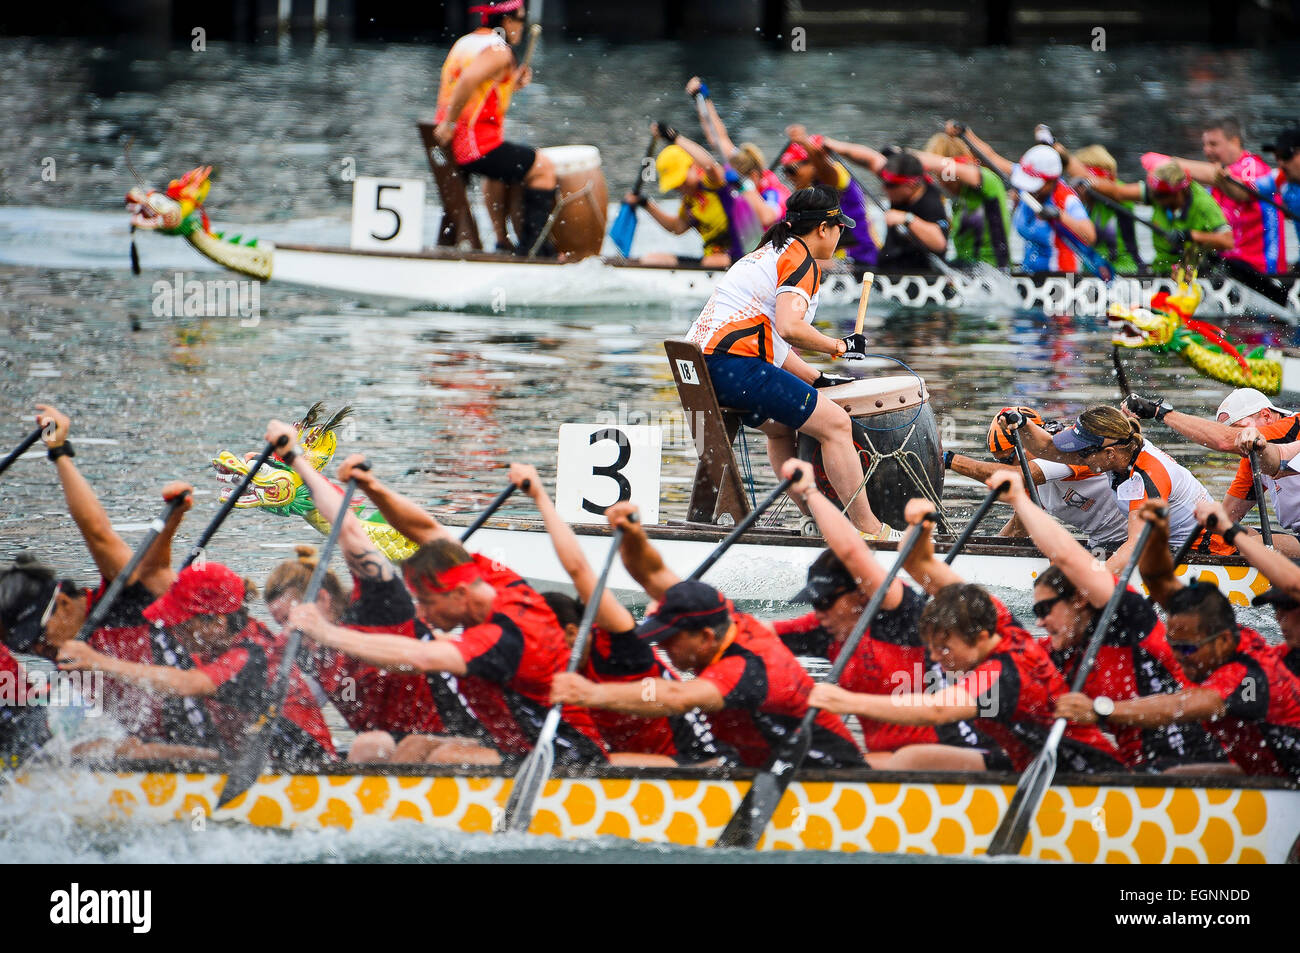 Sydney, Australia. 28th February, 2015. 3,000 paddlers from across Australia competed in the largest dragon boat - Stock Image